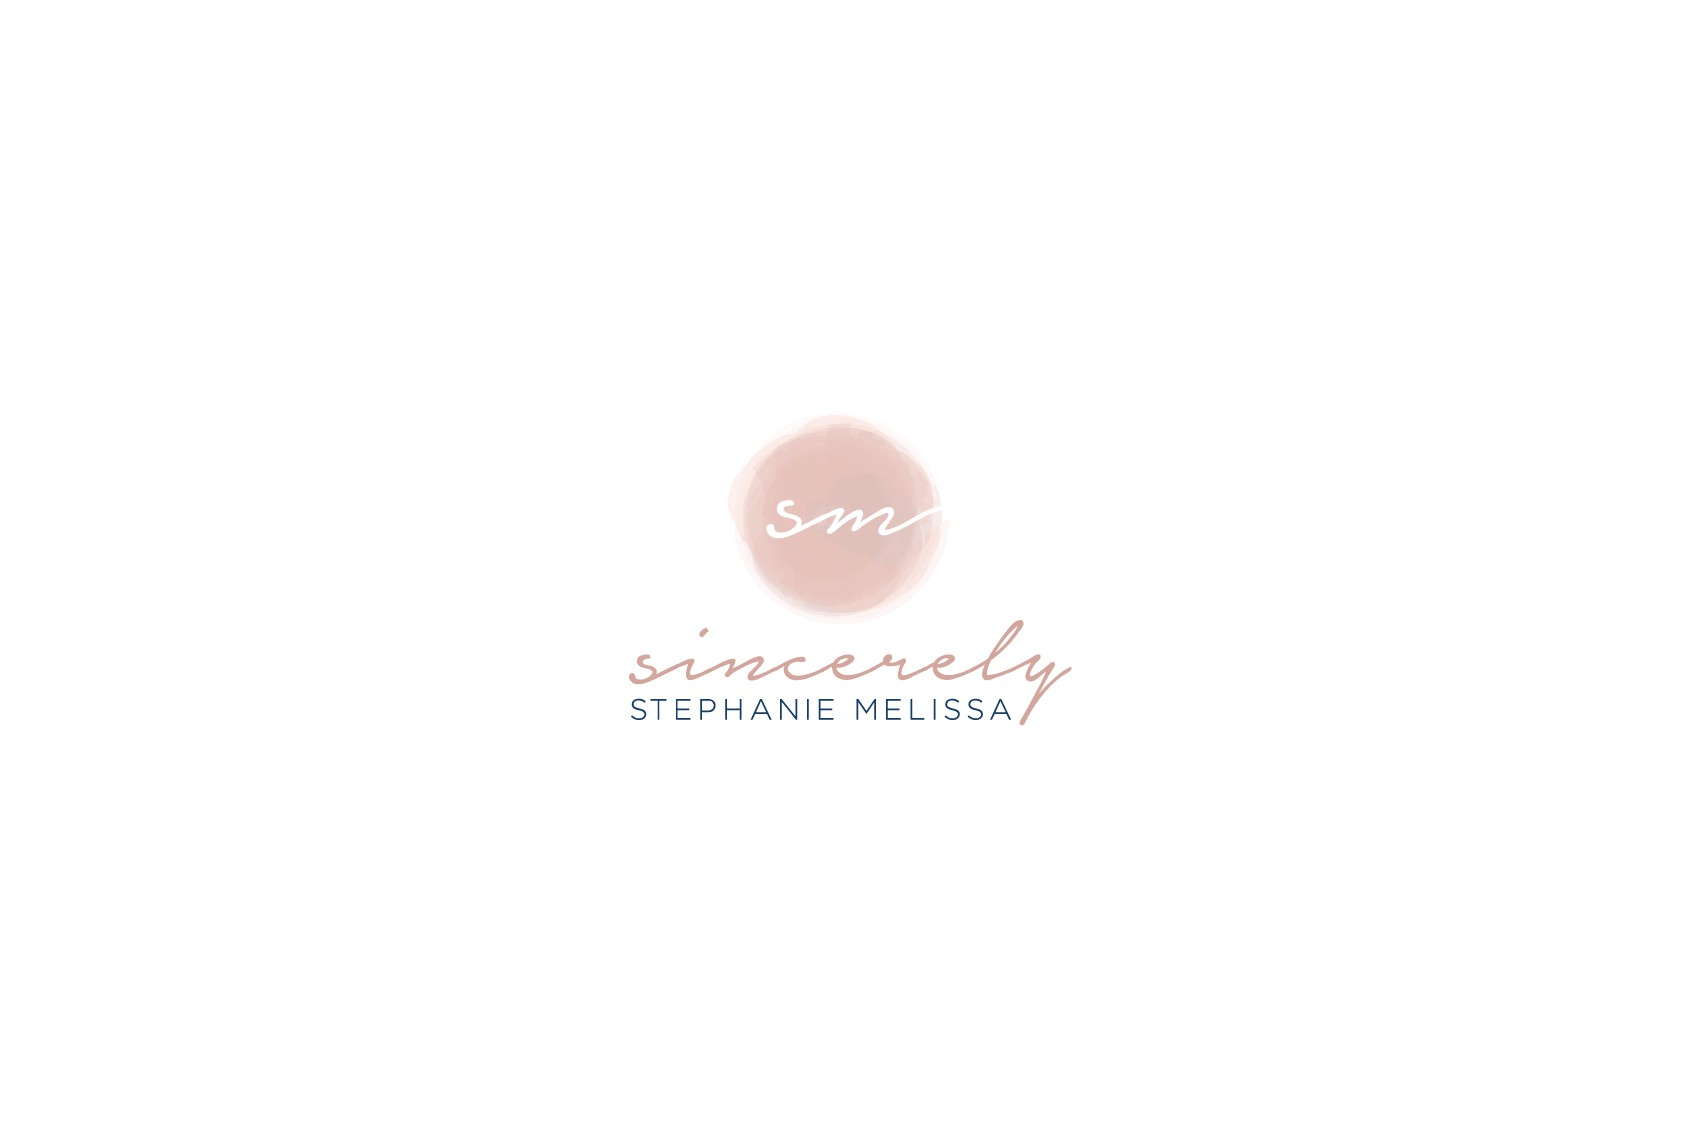 Polished Feminine Logo Needed for Online Business Coach